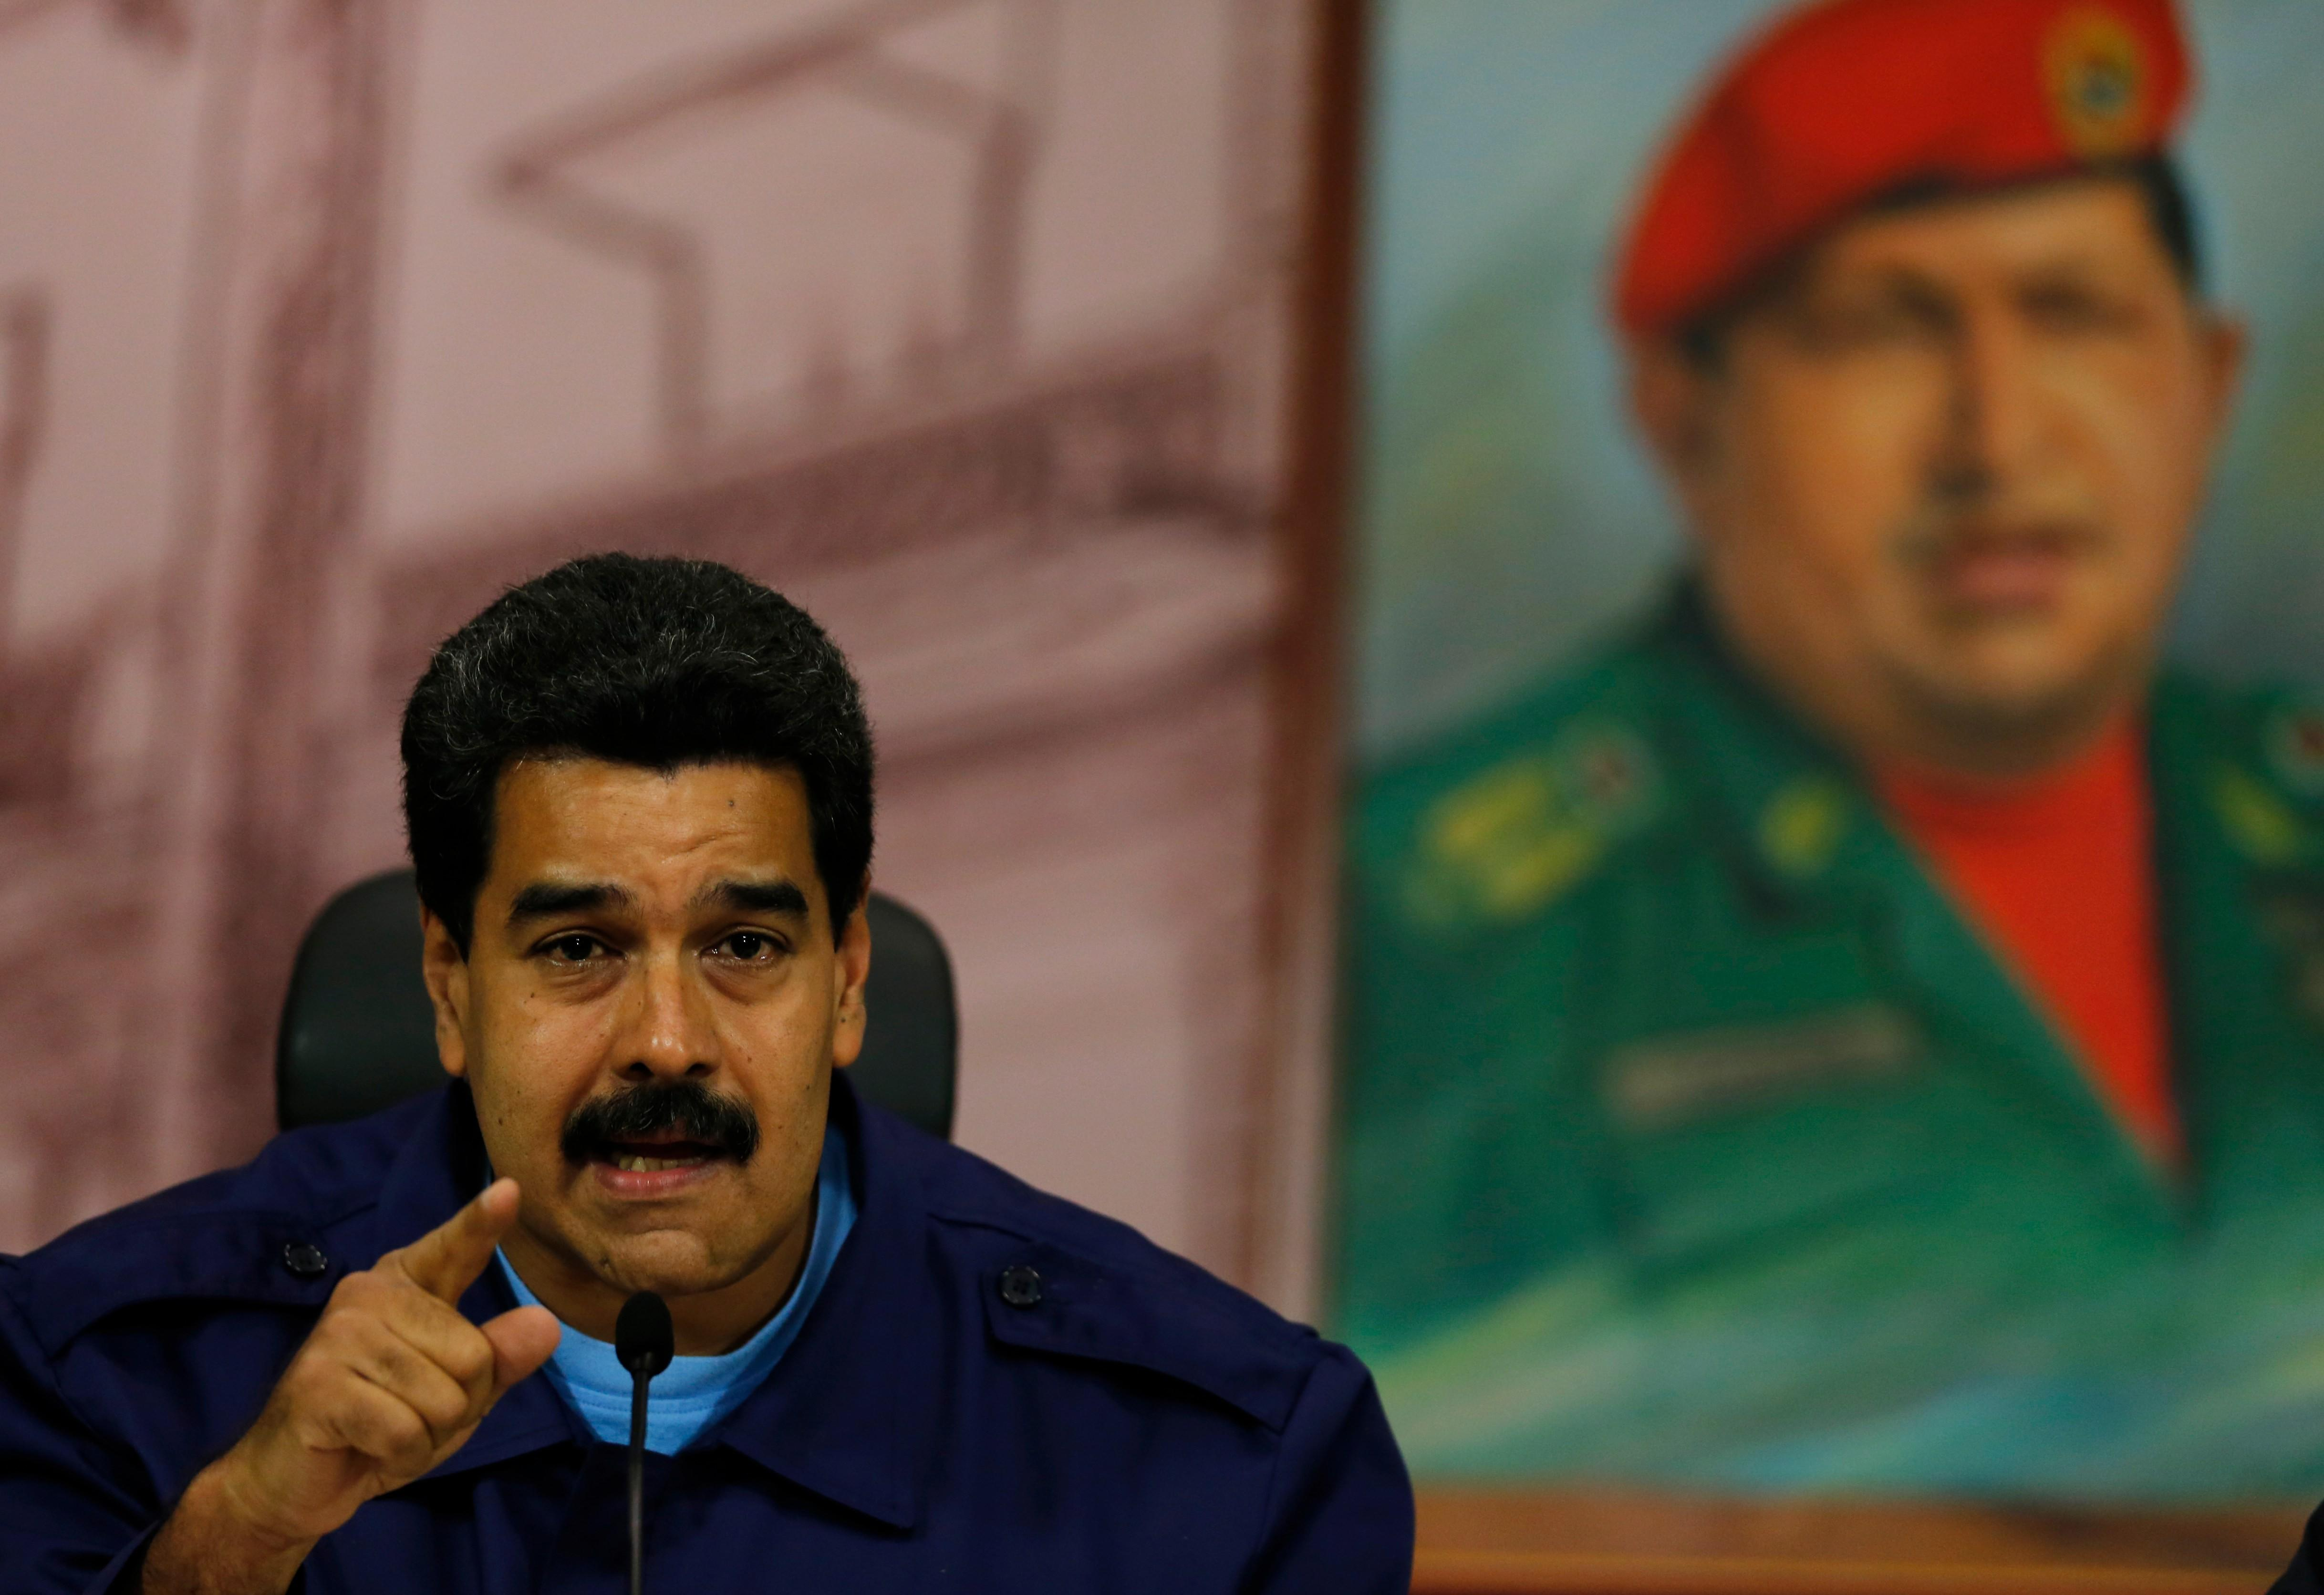 """Venezuela's President Nicolas Maduro speaks next to a painting of the late Hugo Chavez, during a news conference at Miraflores Presidential Palace in Caracas, Venezuela, Friday, Feb. 21, 2014. Speaking Friday to international media, Maduro called out what he said was a """"campaign of demonization to isolate the Bolivarian revolution."""" (AP Photo/Fernando Llano)"""